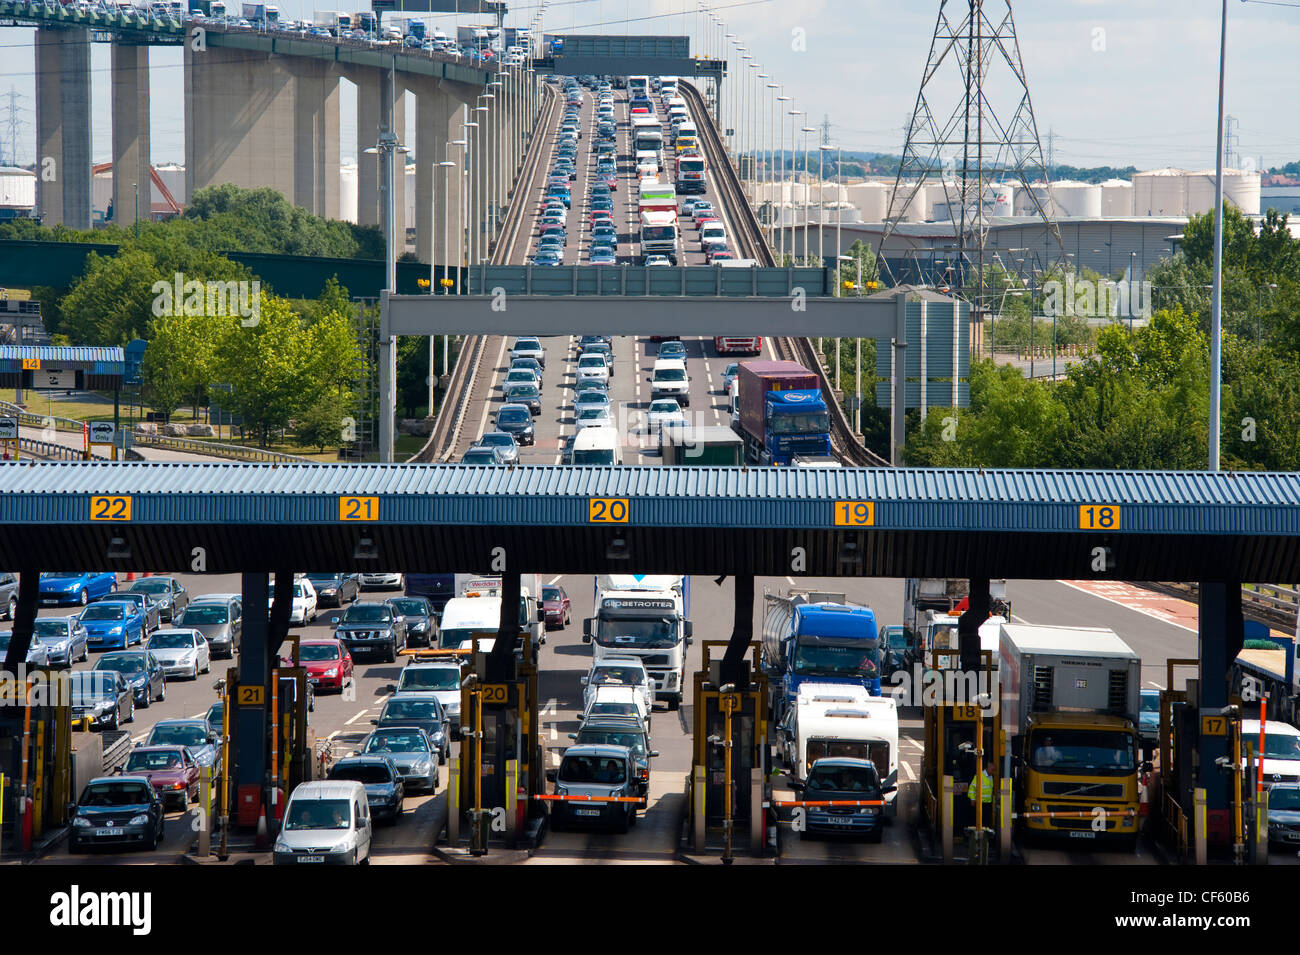 Traffic queueing at the toll booths at the end of the QE2 Bridge (Dartford River Crossing) as it moves into Kent - Stock Image